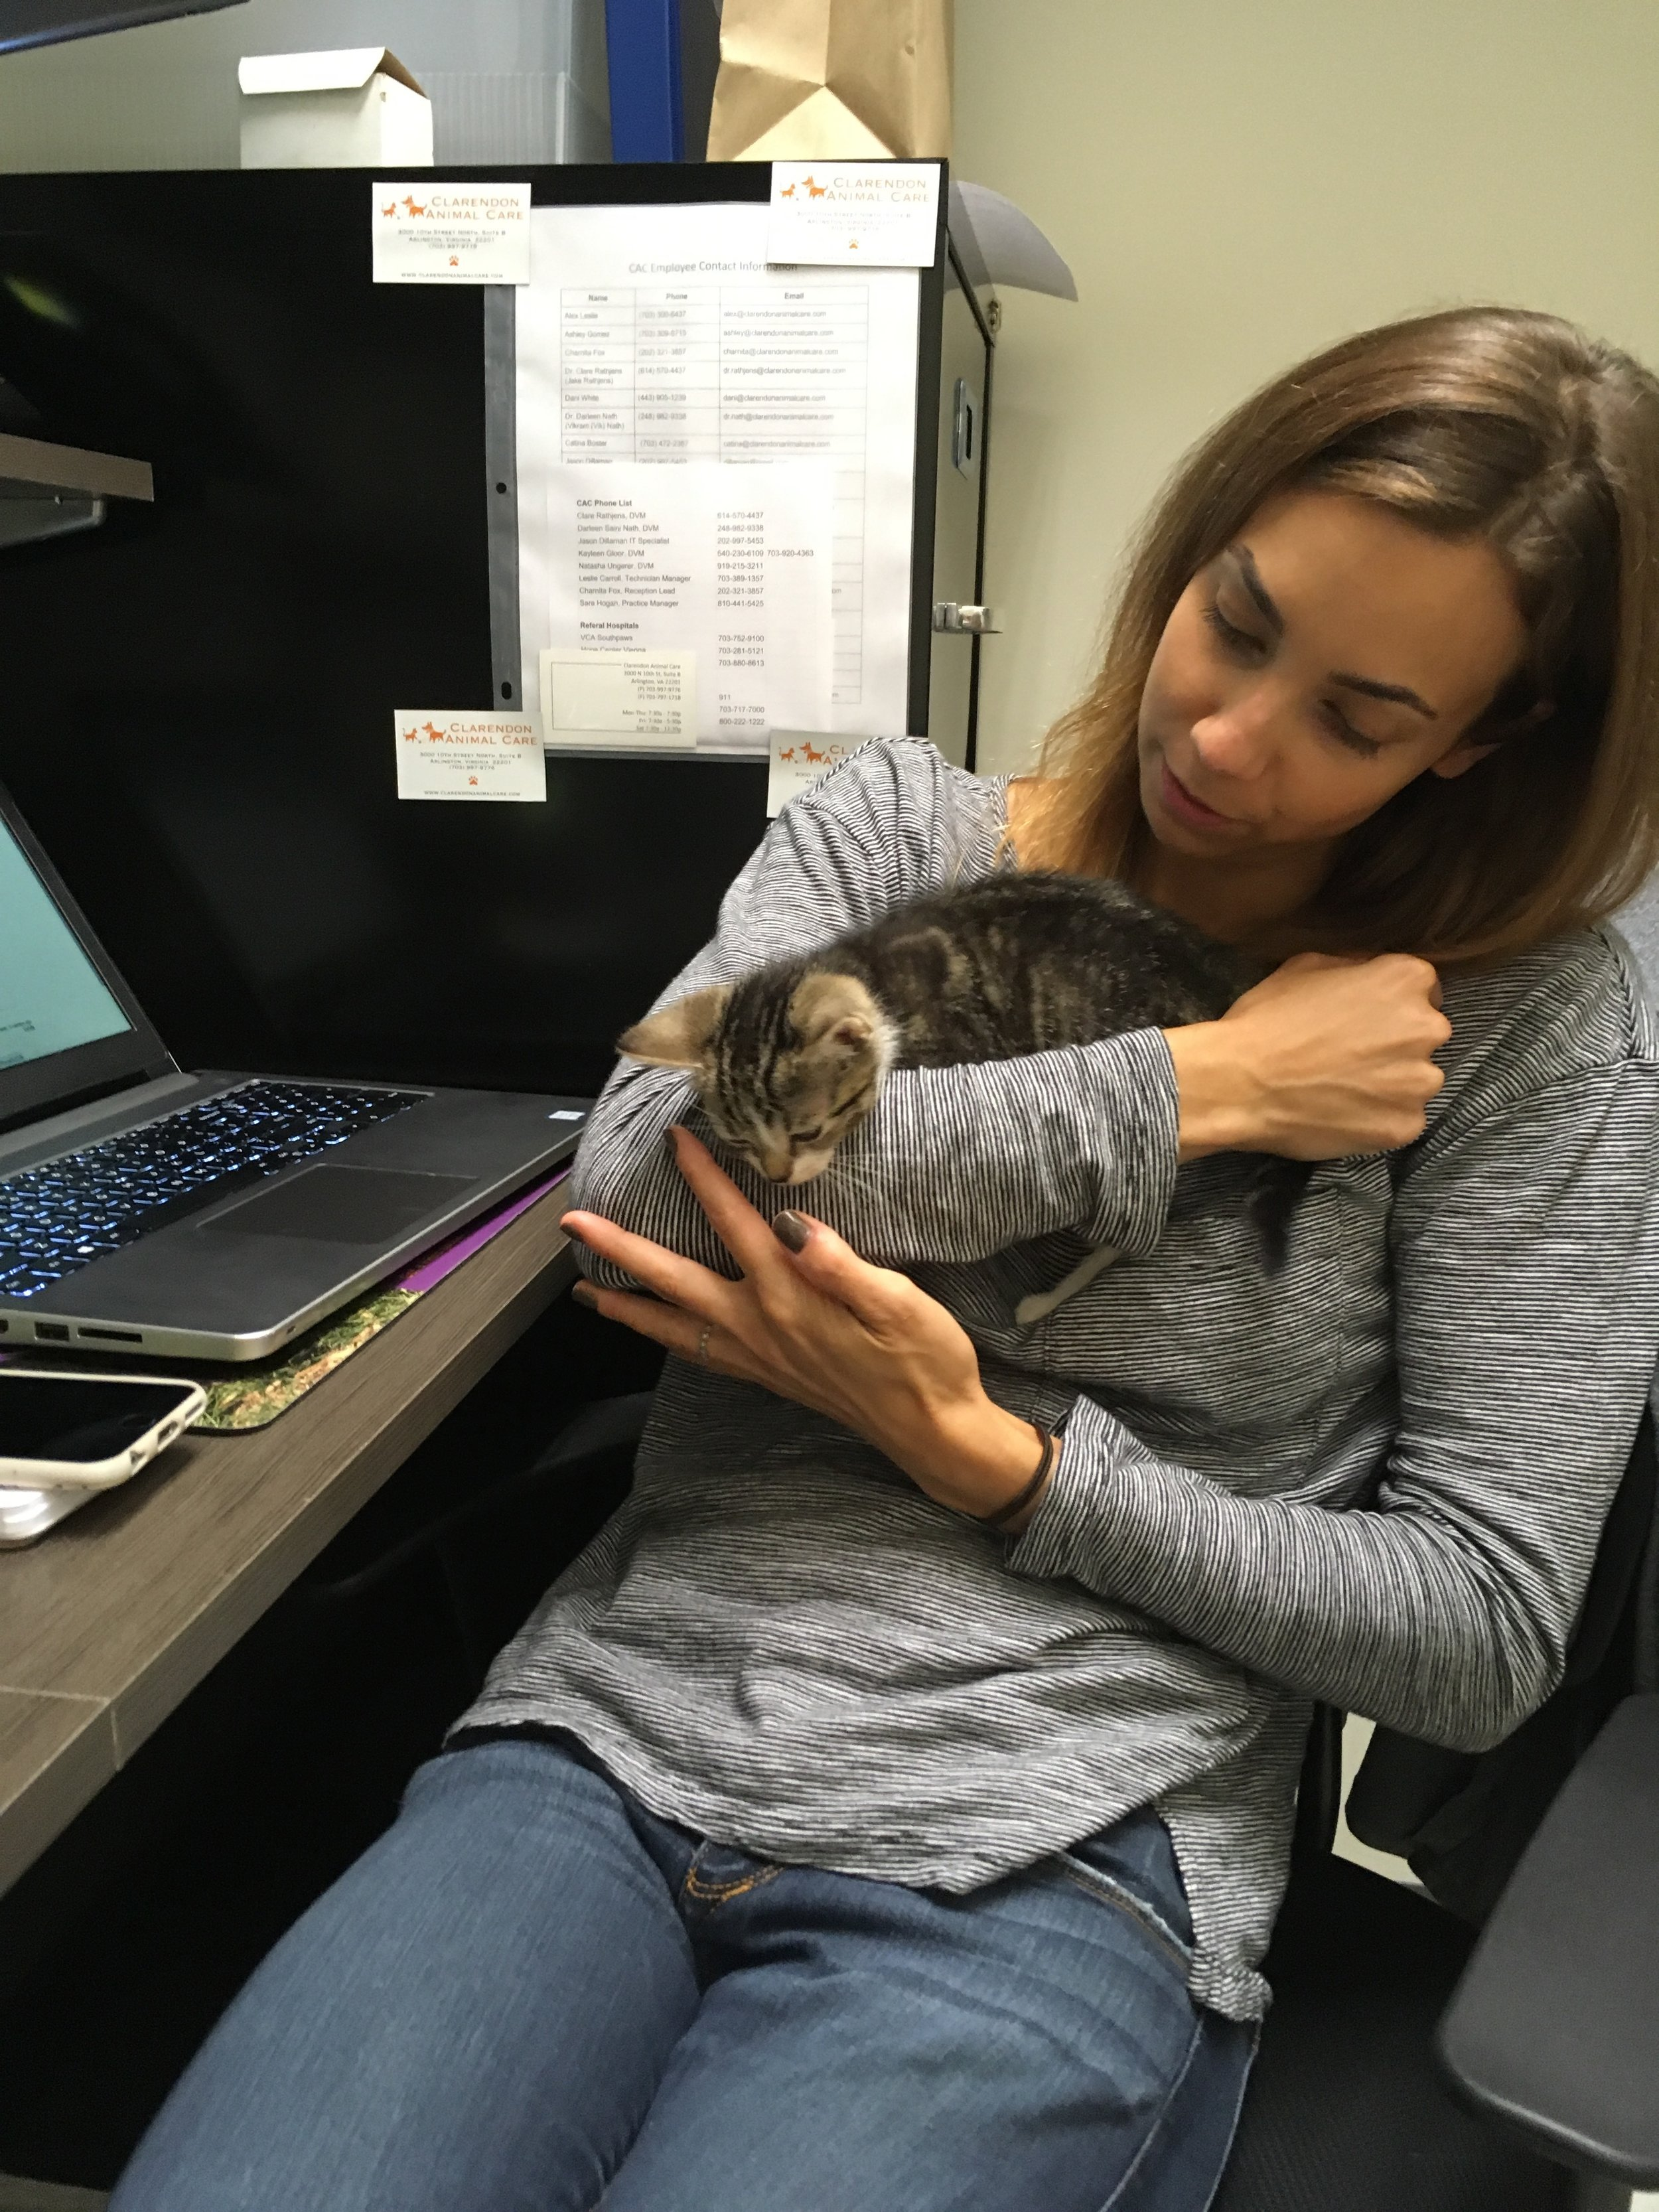 Clarendon Animal Care Veterinary Clinic Arlington Virginia practice manager with a kitten